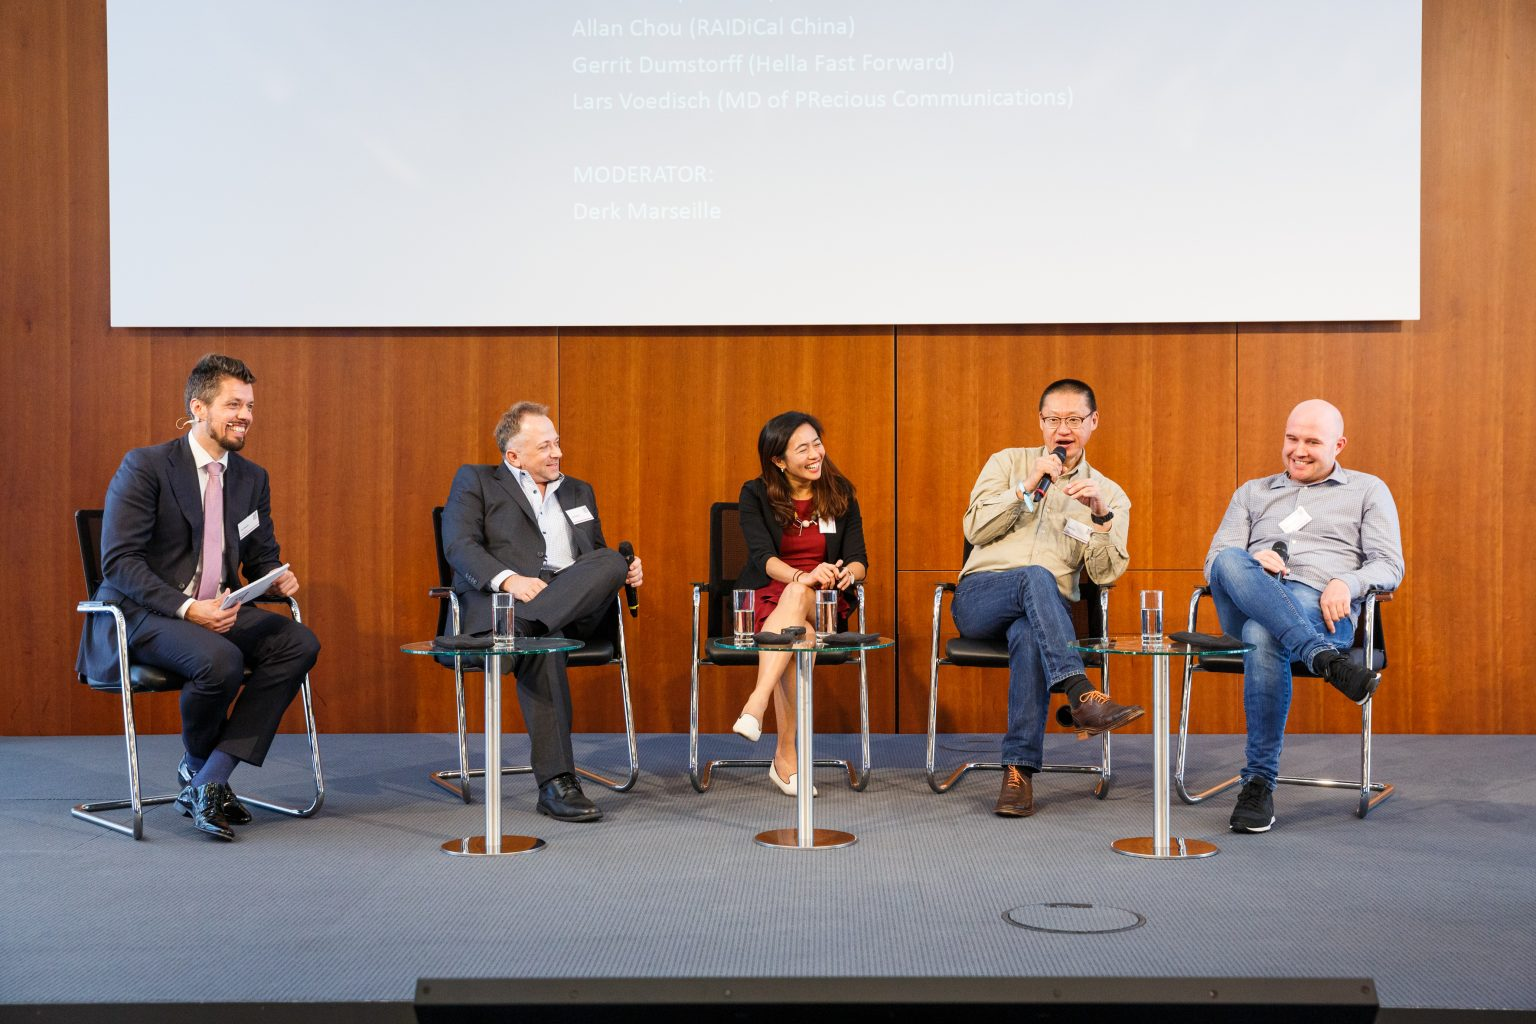 Meet investors from Asia and Europe at AsiaBerlin Summit 2020 (21-27 September)